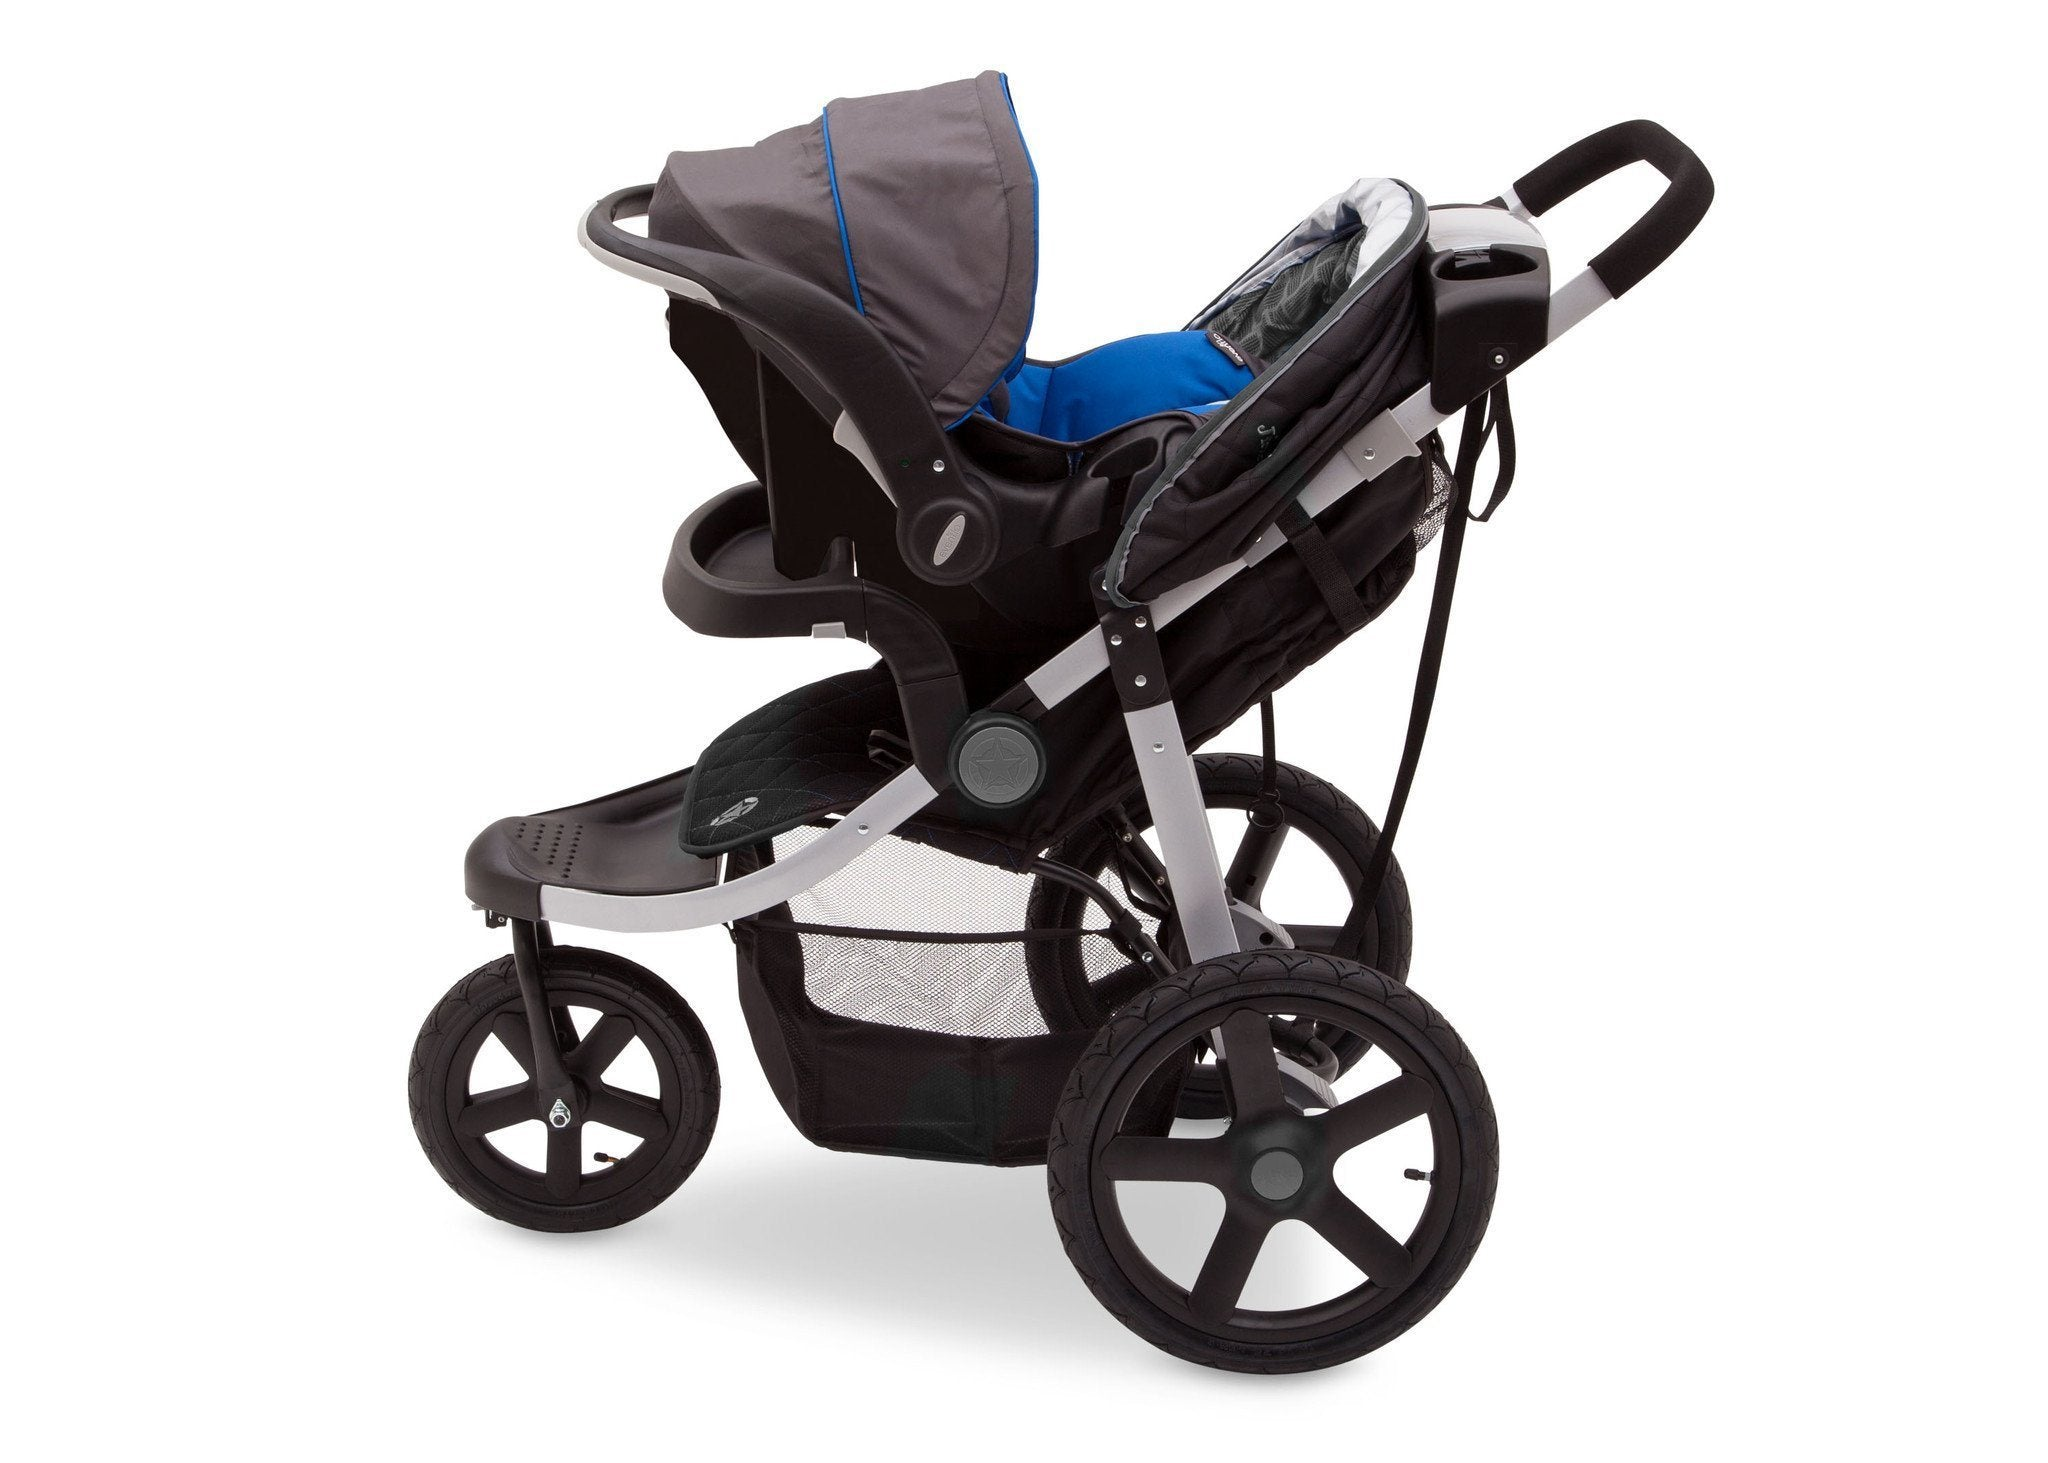 Jeep Adventure All Terrain Jogger Stroller by Delta Children, Charcoal Tracks (0251), with generous undercarriage storage bin